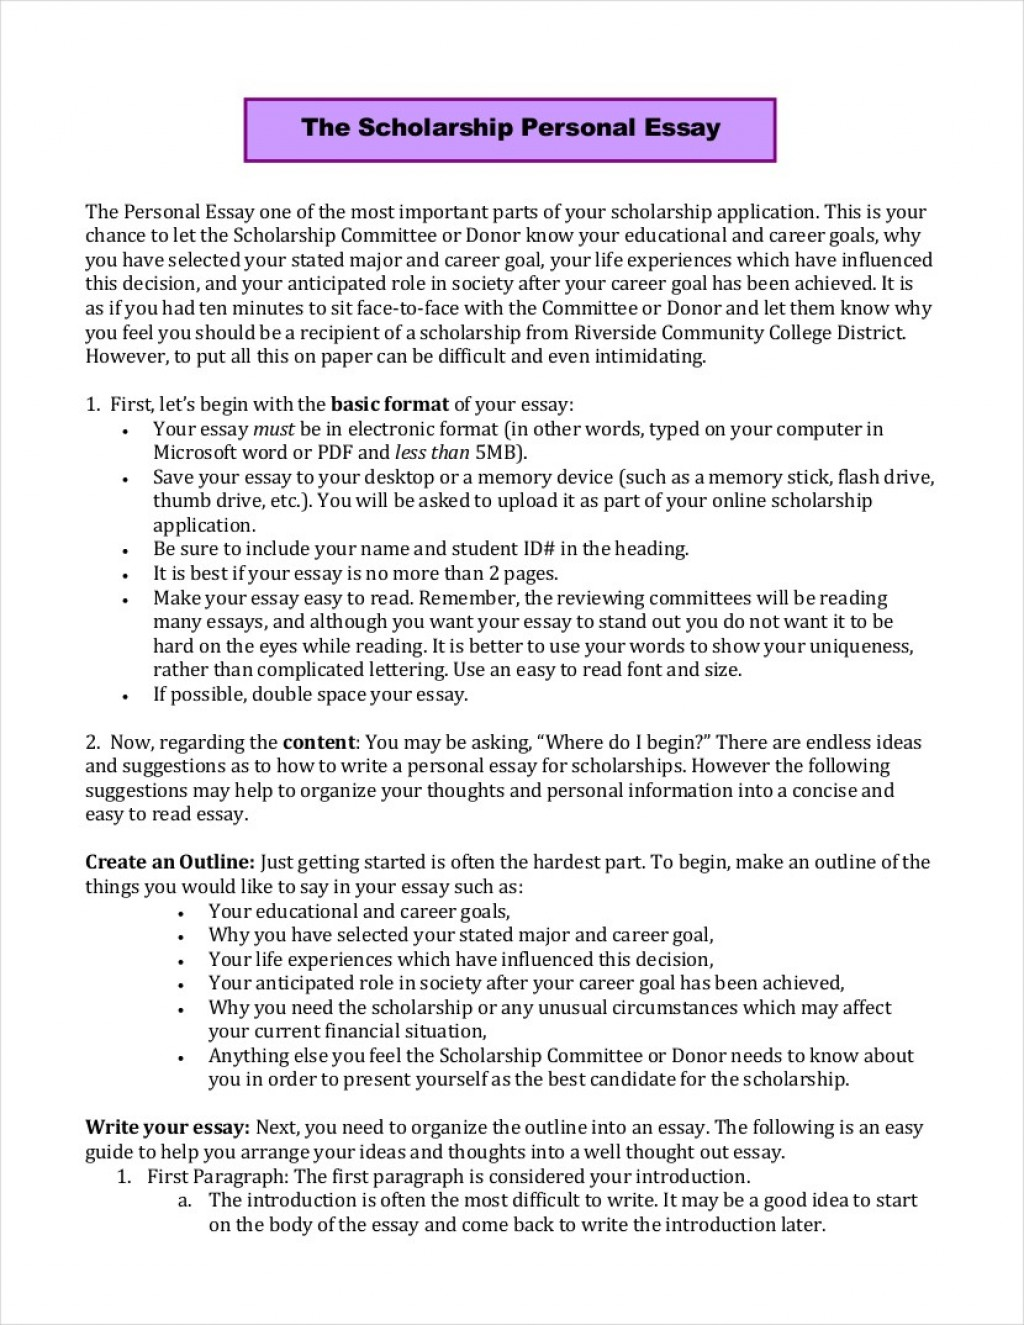 016 Personal Essays For Scholarships Why I Need Scholarship Pdf Format Formidable Essay Narrative Samples Graduate School Large